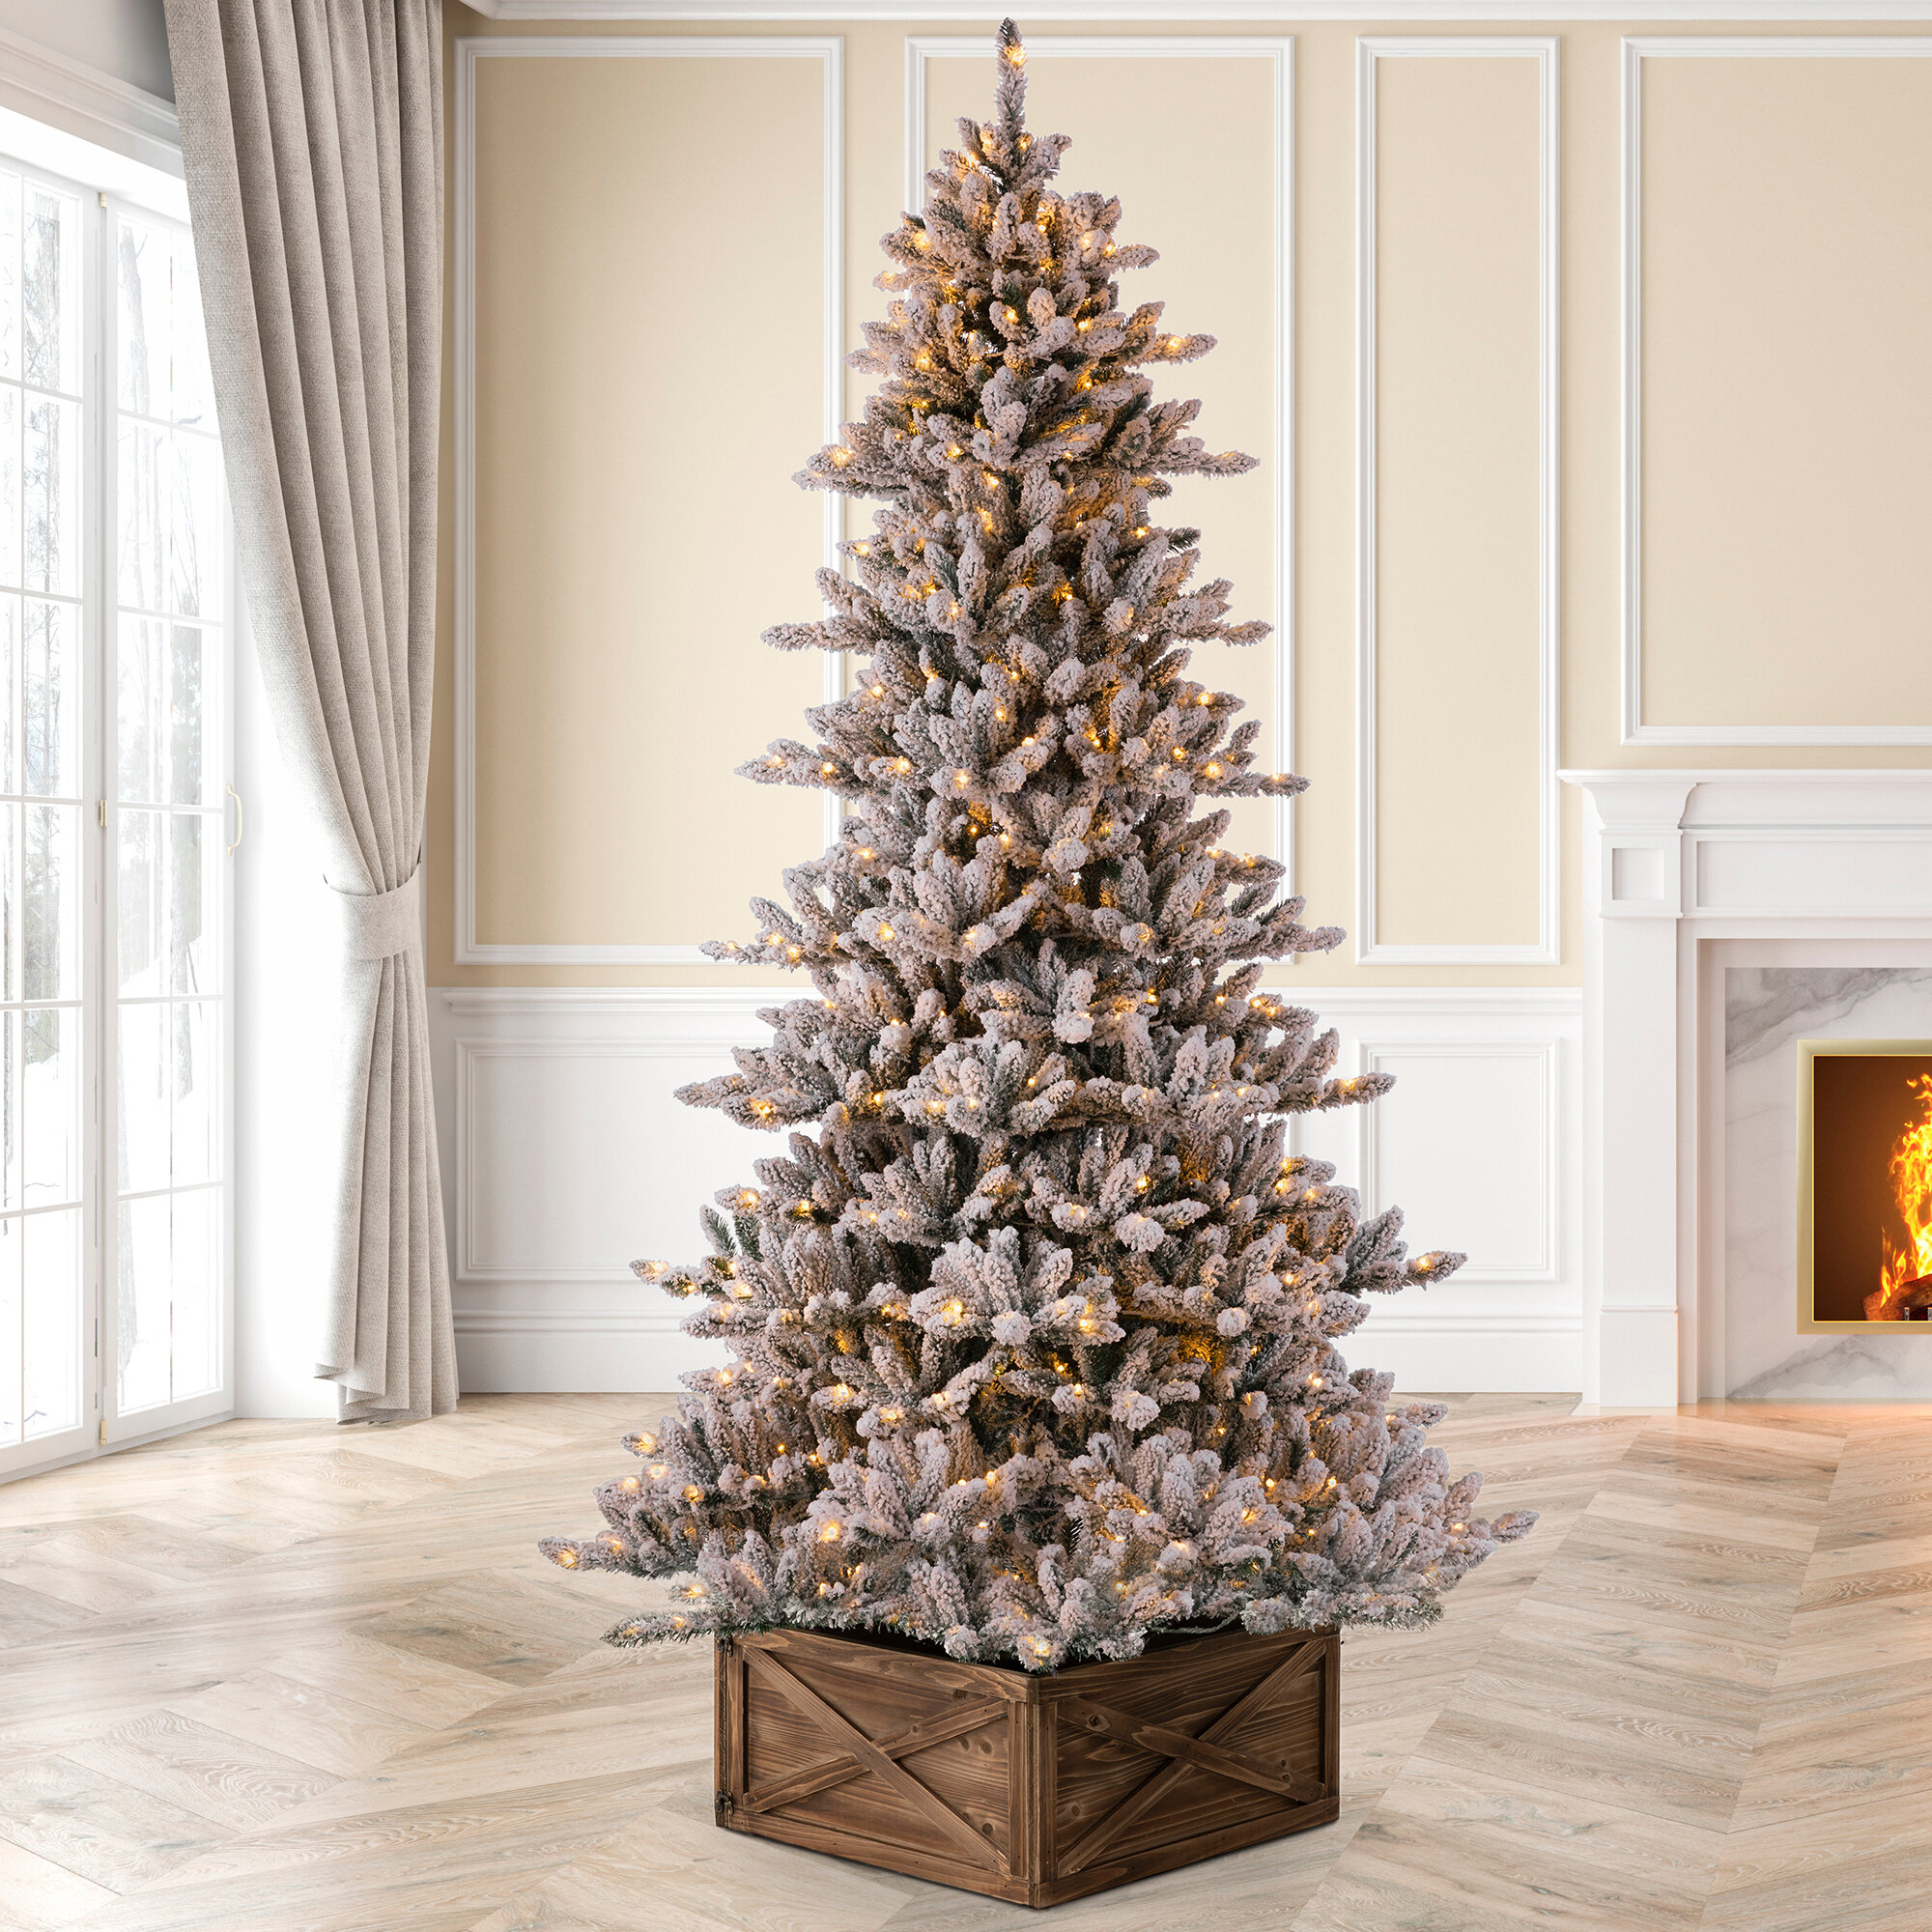 The Holiday Aisle 7 5 Green White Fir Artificial Christmas Tree With 400 White Lights Reviews Wayfair